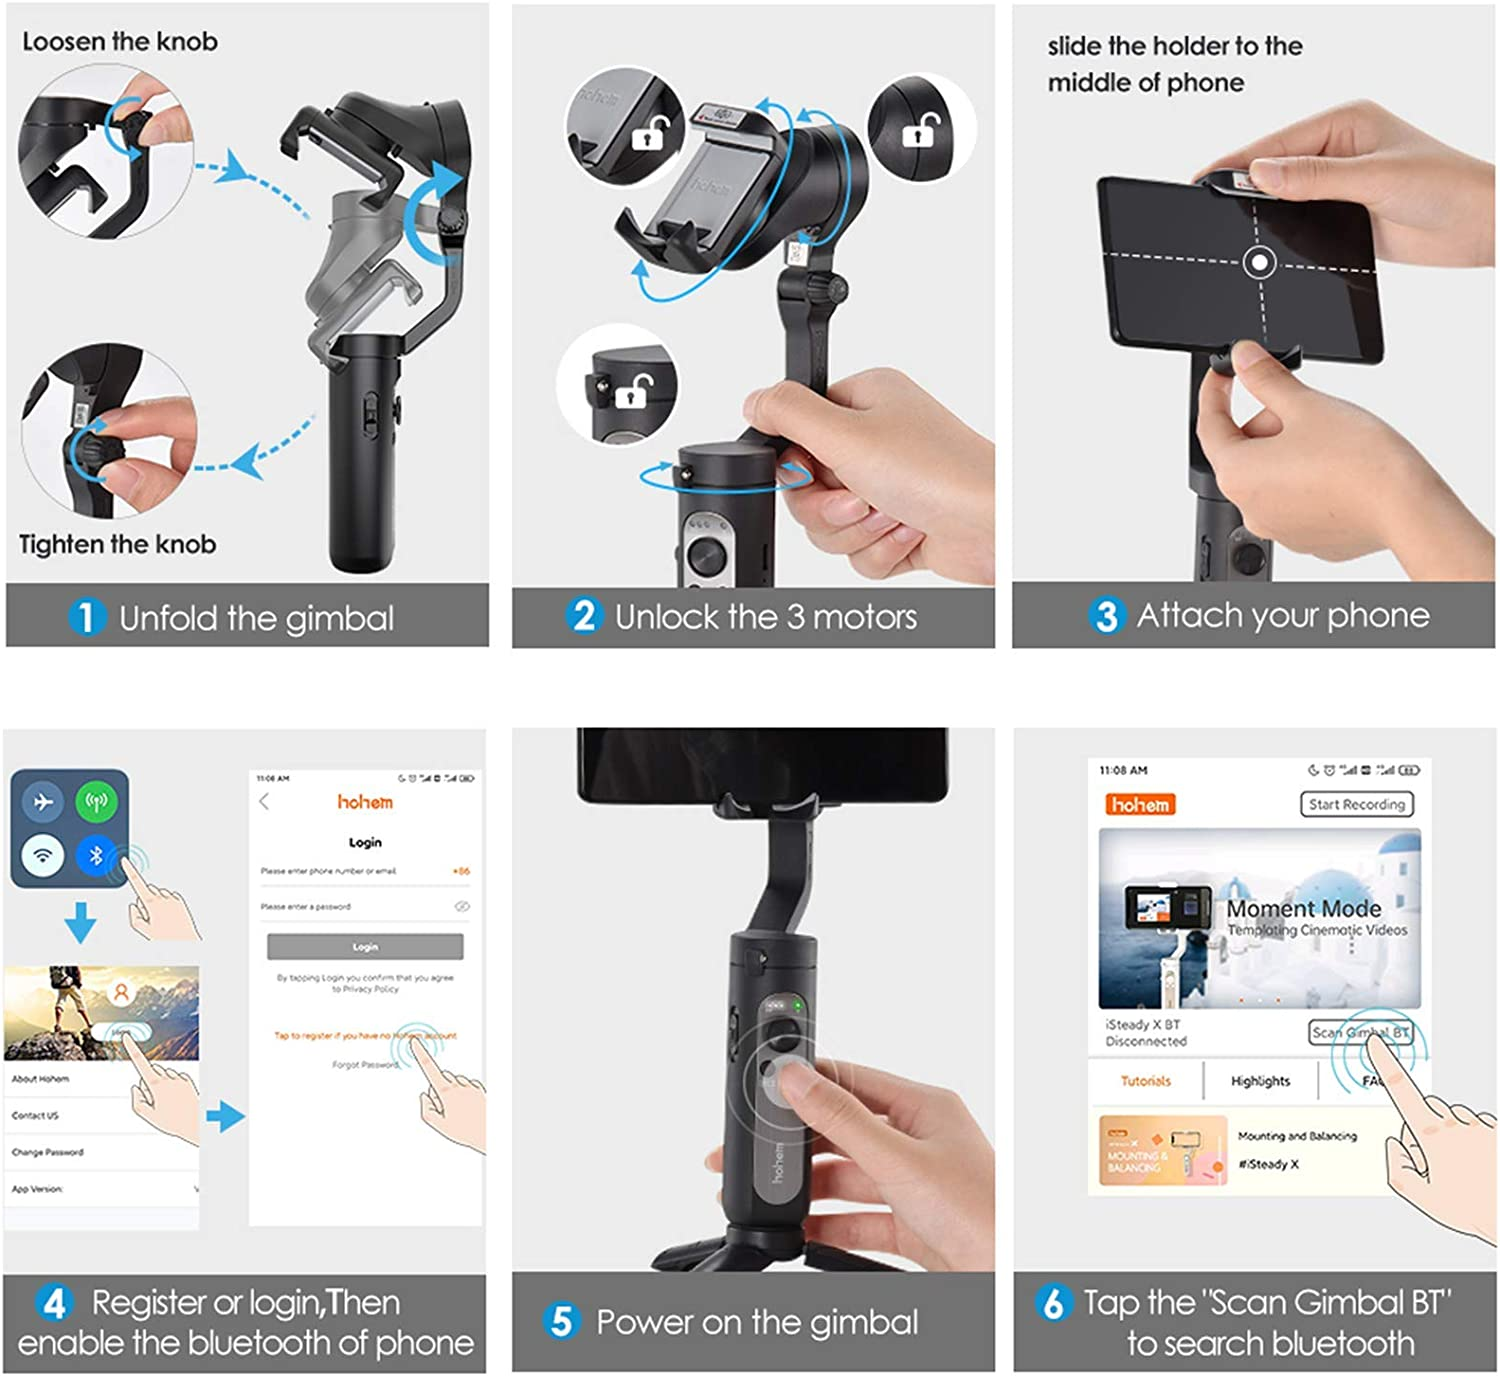 3-Axis Gimbal Stabilizer for Smartphone - 0.5lbs Lightweight Foldable Phone Gimbal w/Auto Inception Dolly-Zoom Time-lapse, Handheld Gimbal for iPhone 11 pro max/11/Xs Max/Samsung - Hohem iSteady X : Camera & Photo